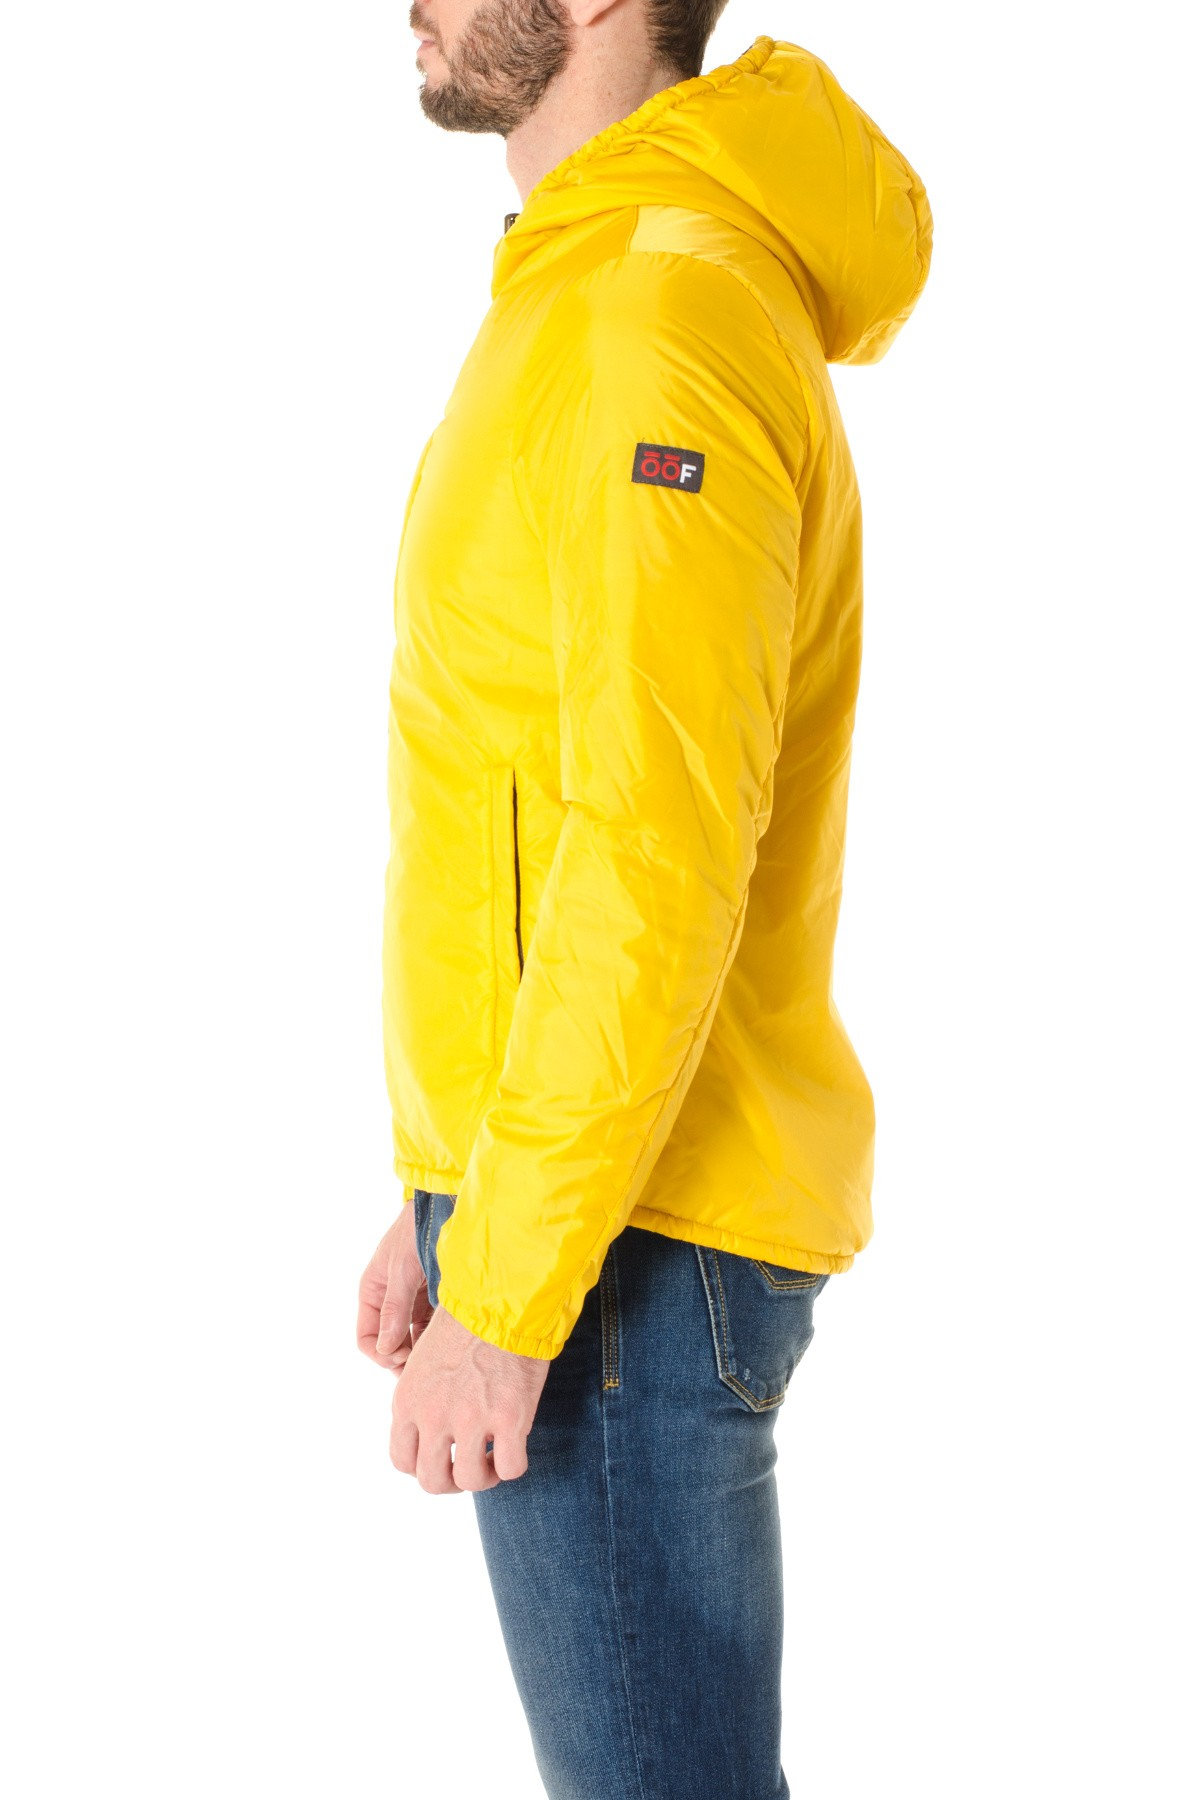 yellow jacket online dating There are several ways to treat a yellow jacket stingtreatment consists of treating the symptoms associated with sting yellow jacket sting treatment is similar to treating a bee stingthe most common symptoms of getting stung by a yellow jacket are pain and itching.